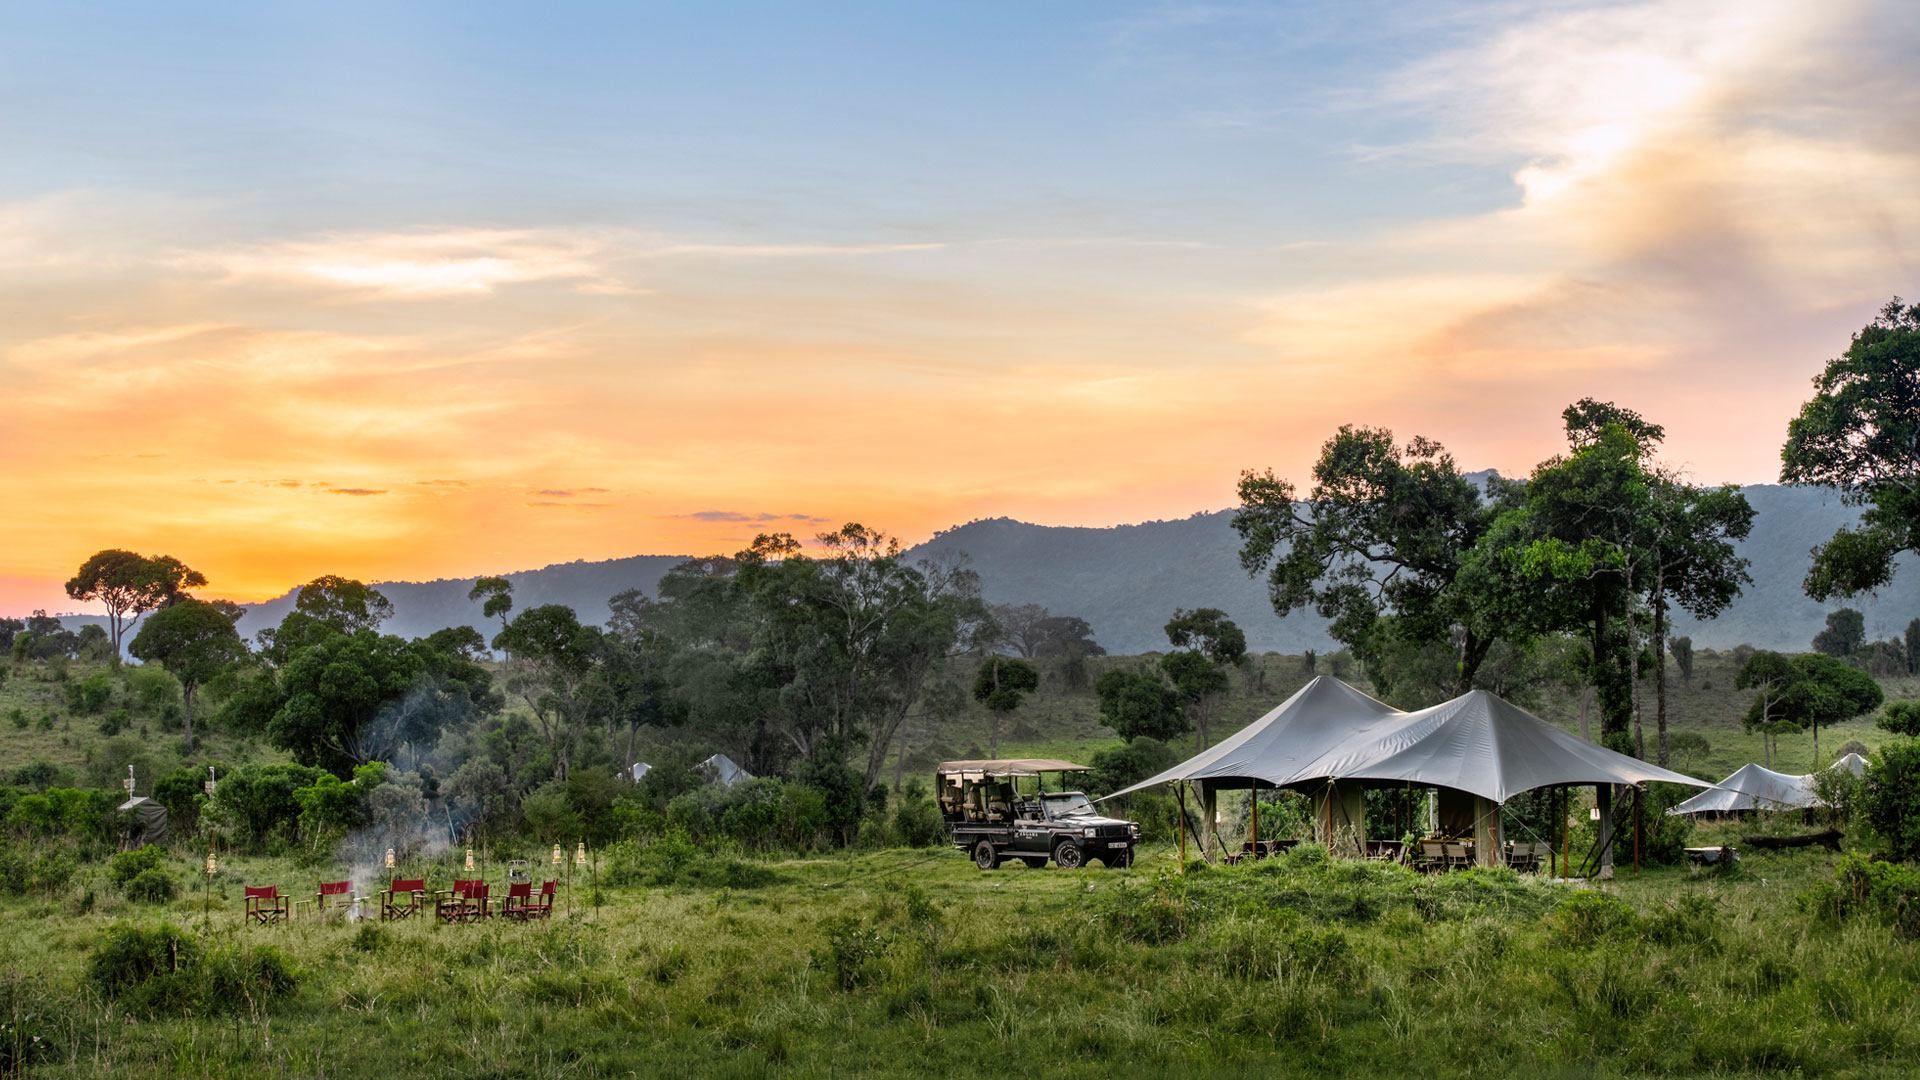 Angama Safari Camp at sunset